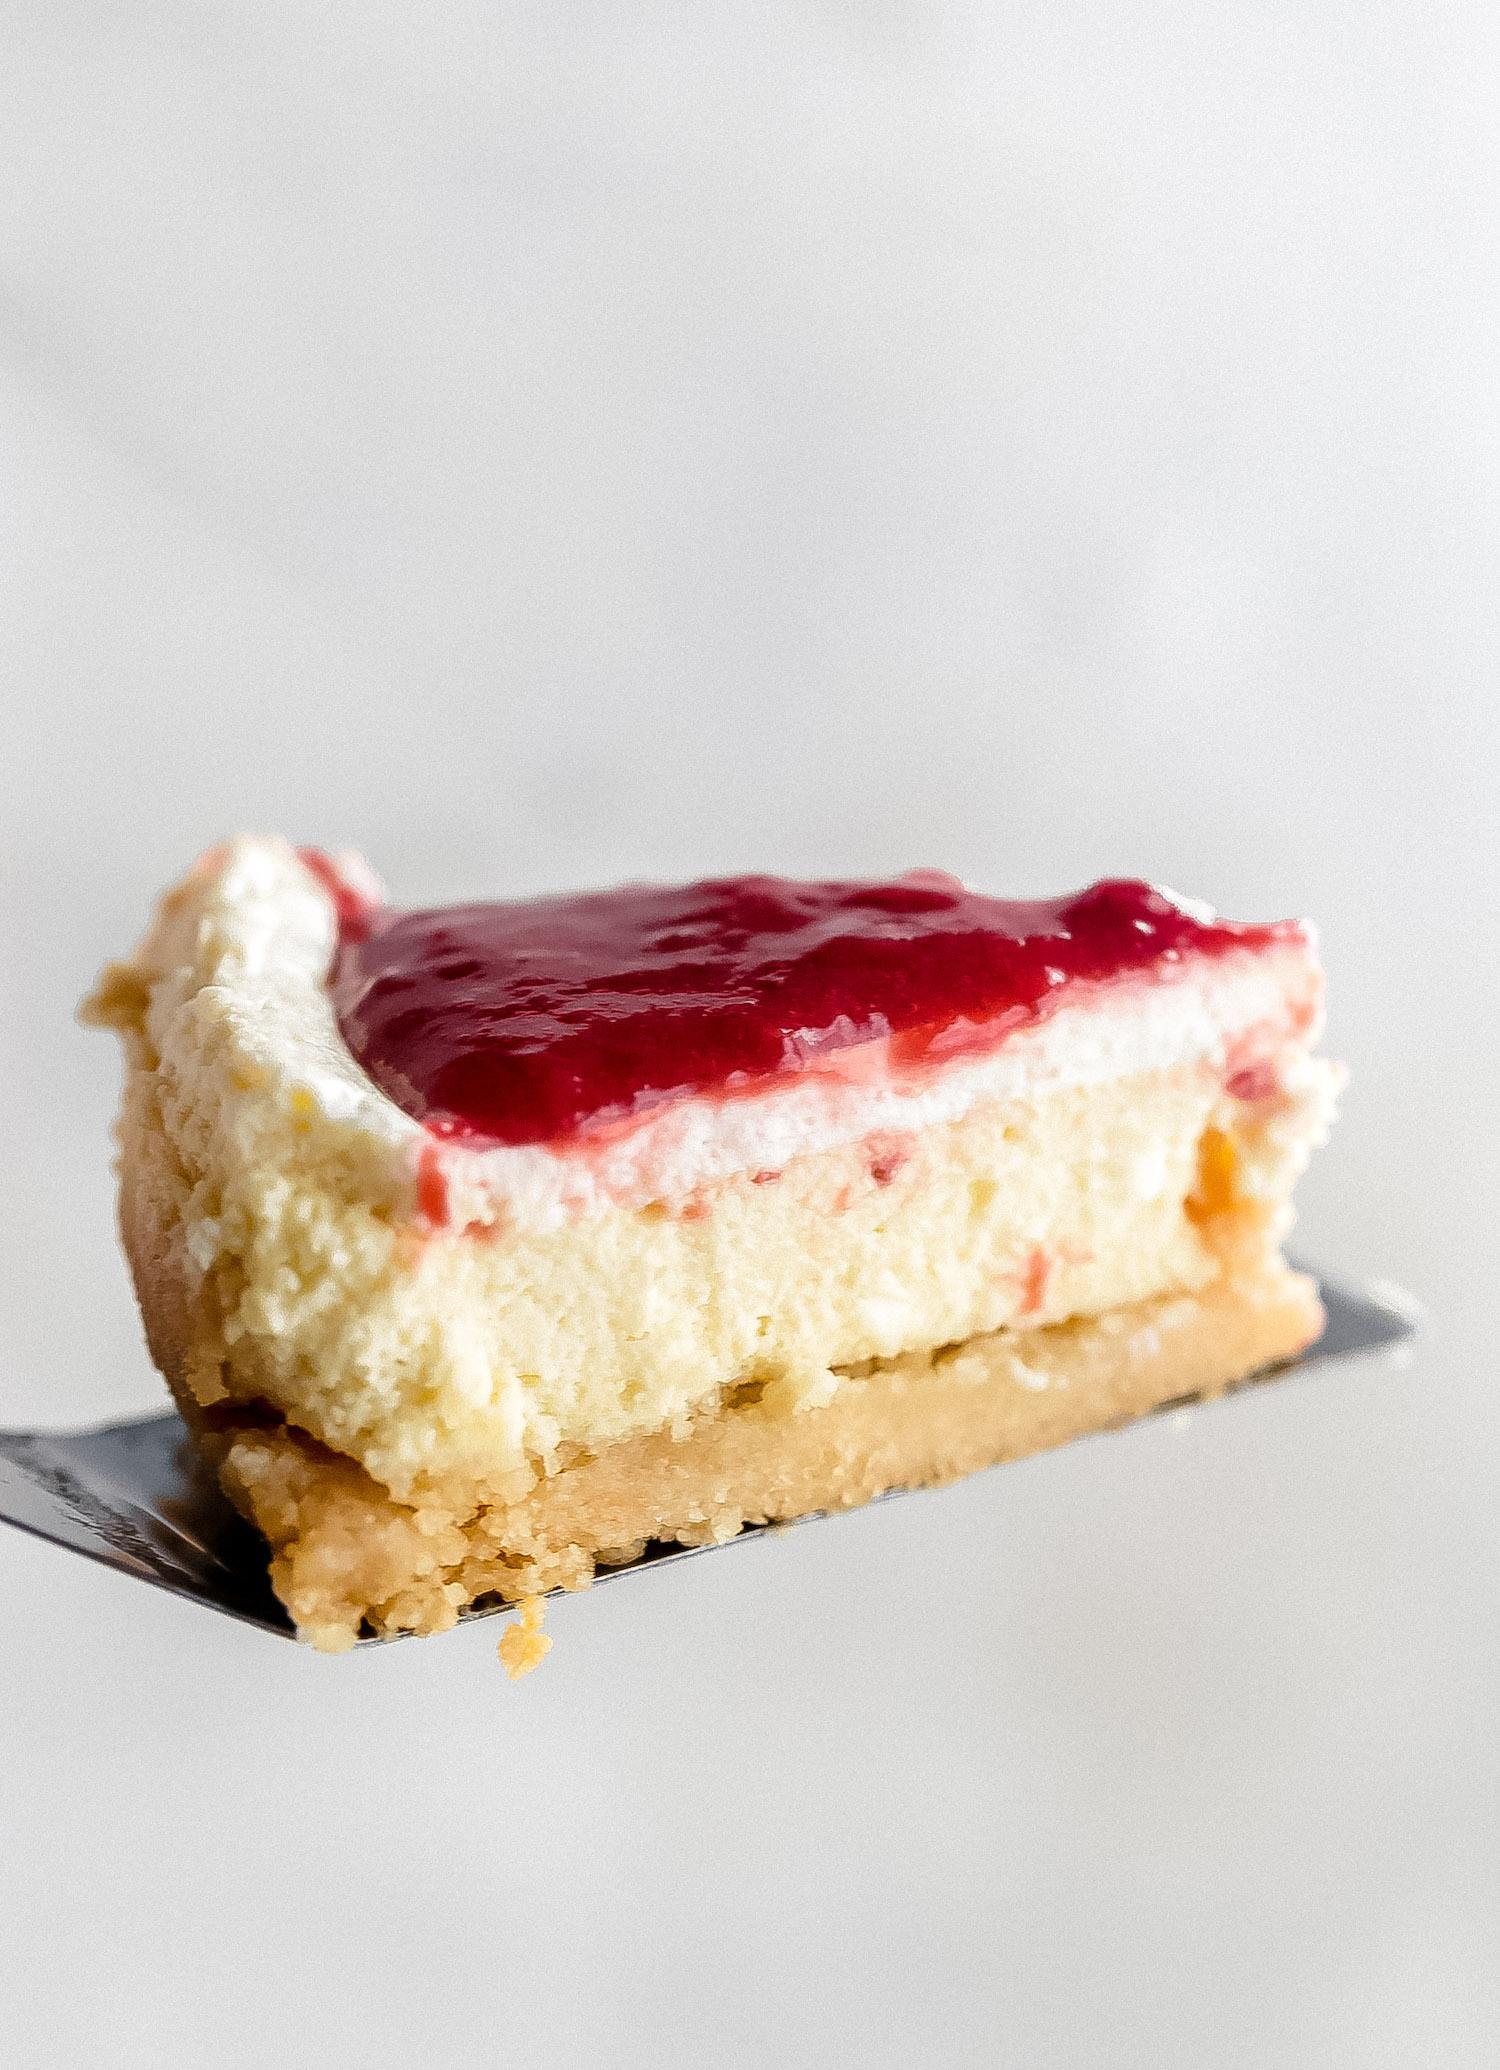 Amazing Basic Gluten-Free Cheesecake: this vanilla cheesecake is creamy, rich yet light, perfectly sweet and tart, with a hint of lemon and addictive gluten-free crust. | TrufflesandTrends.com